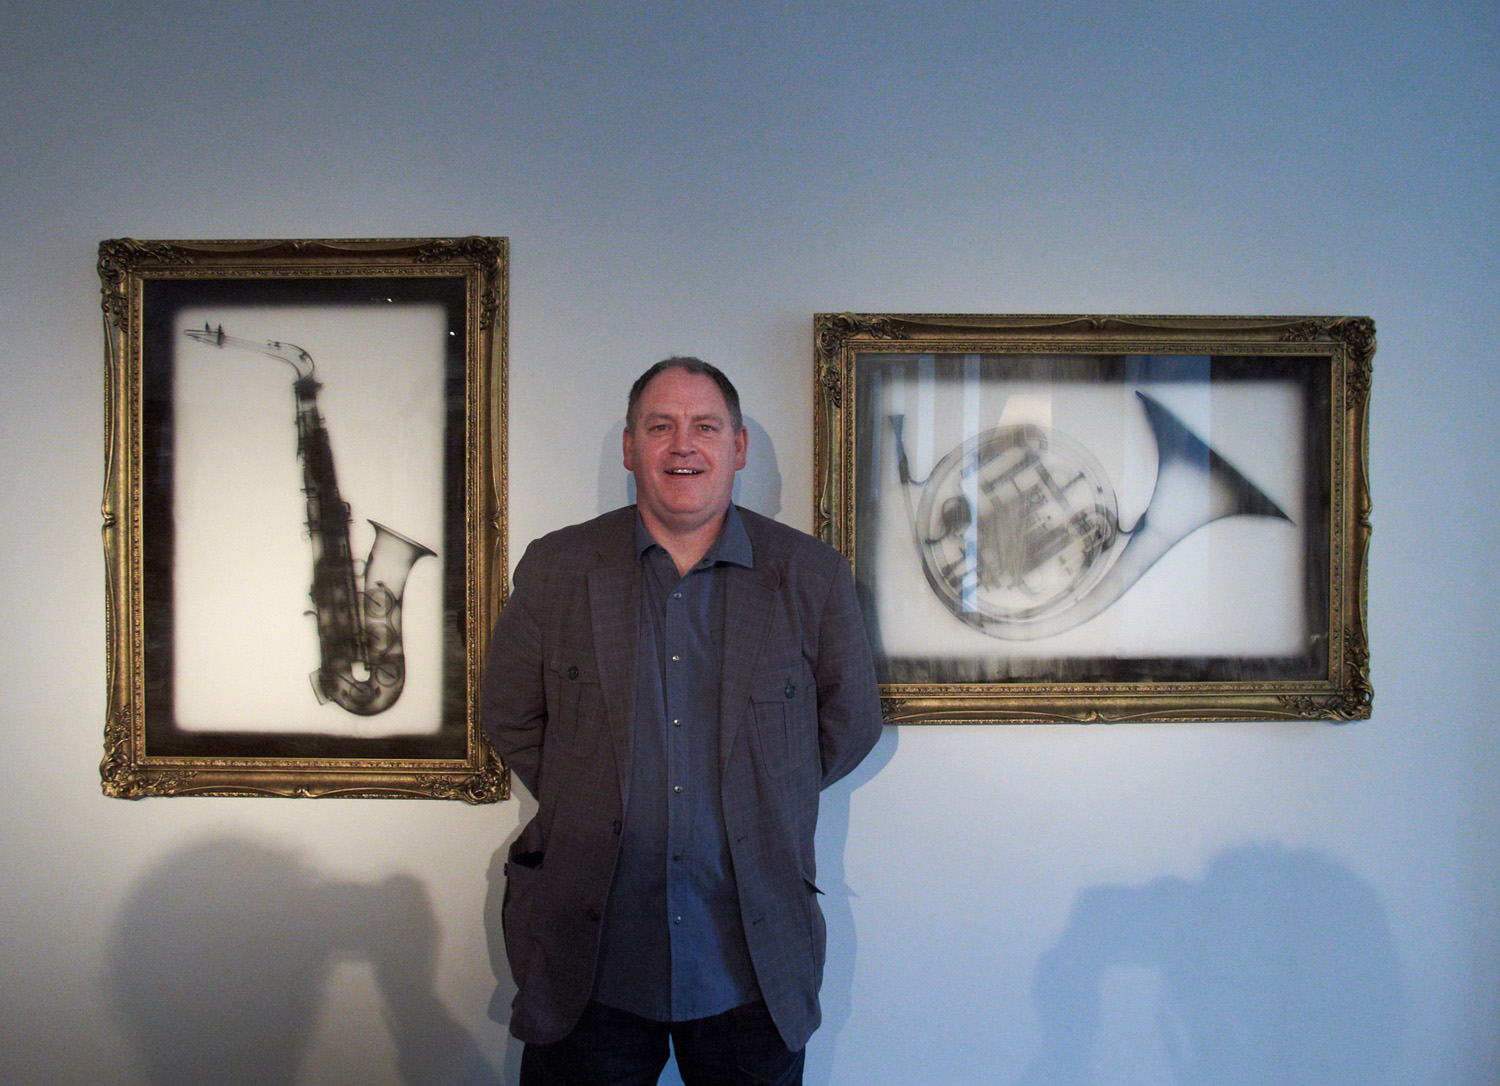 Nick Veasey with x-rated music instruments